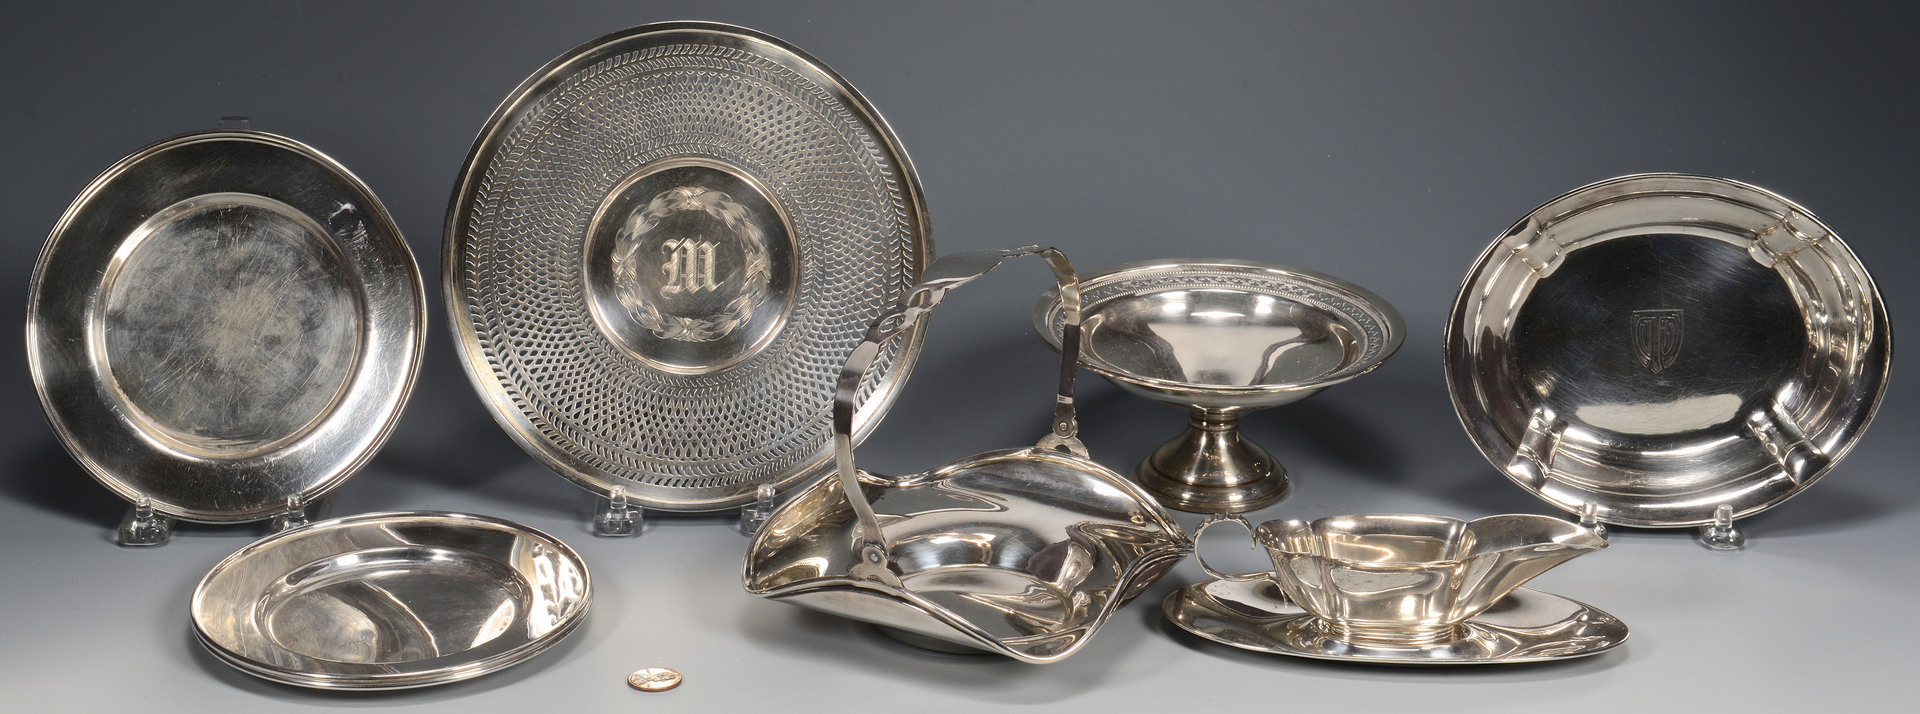 Lot 785: Grouping 20th Century Sterling Holloware, 8 pcs.